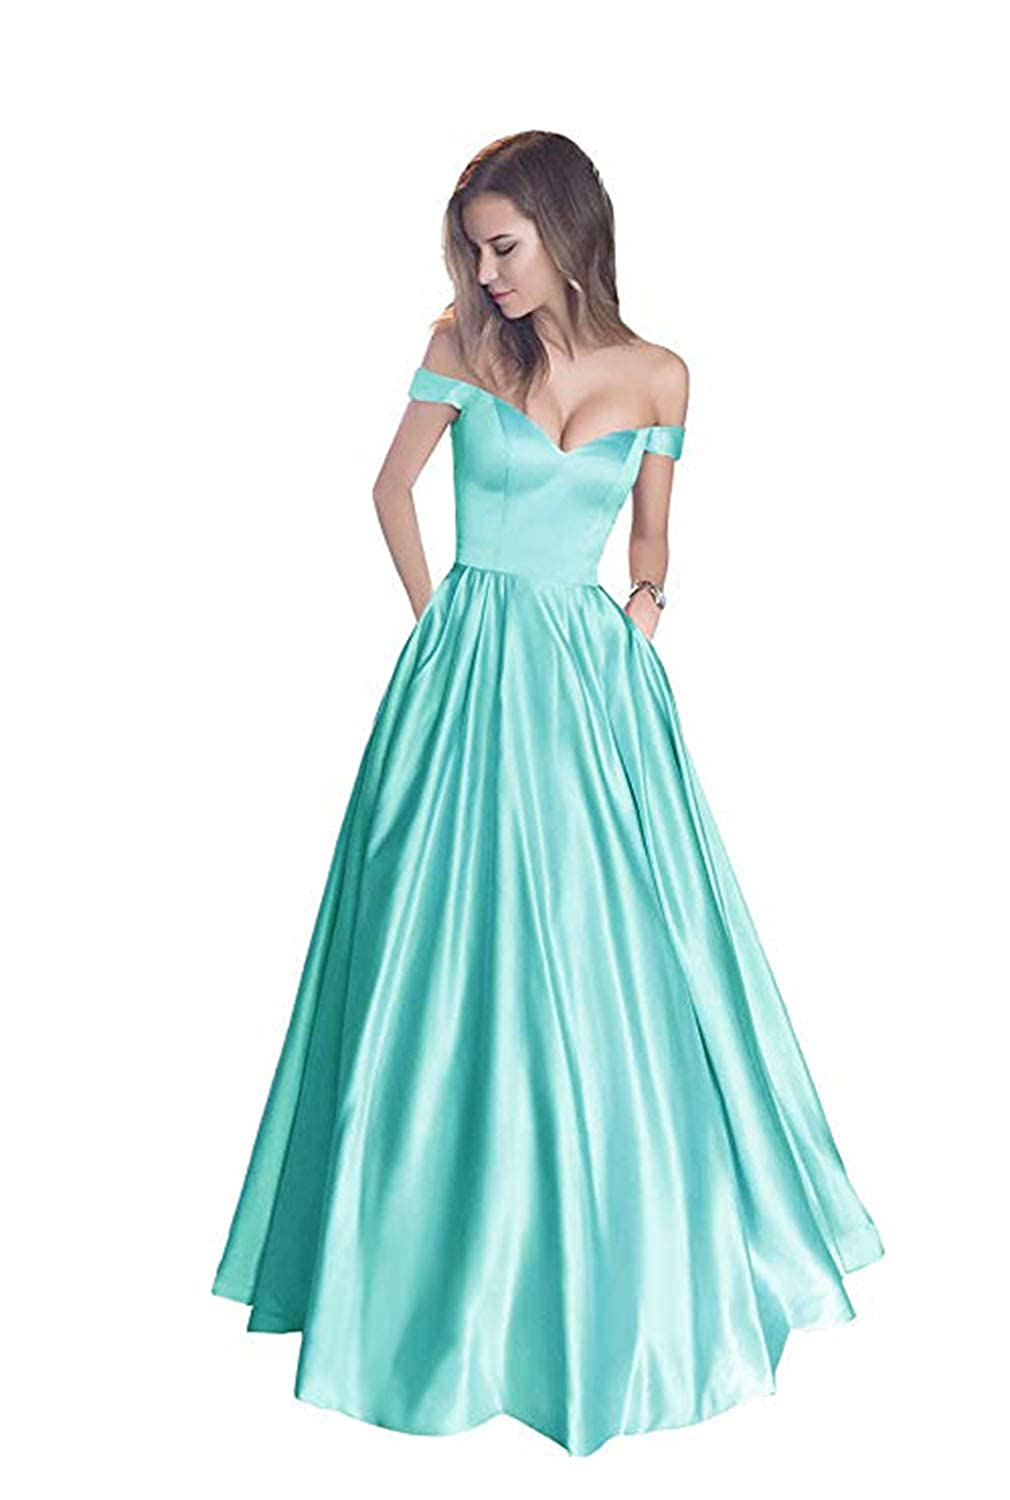 Aqua without Belt FJMM Womens Off The Shoulder Beaded ALine Prom Dress for Party